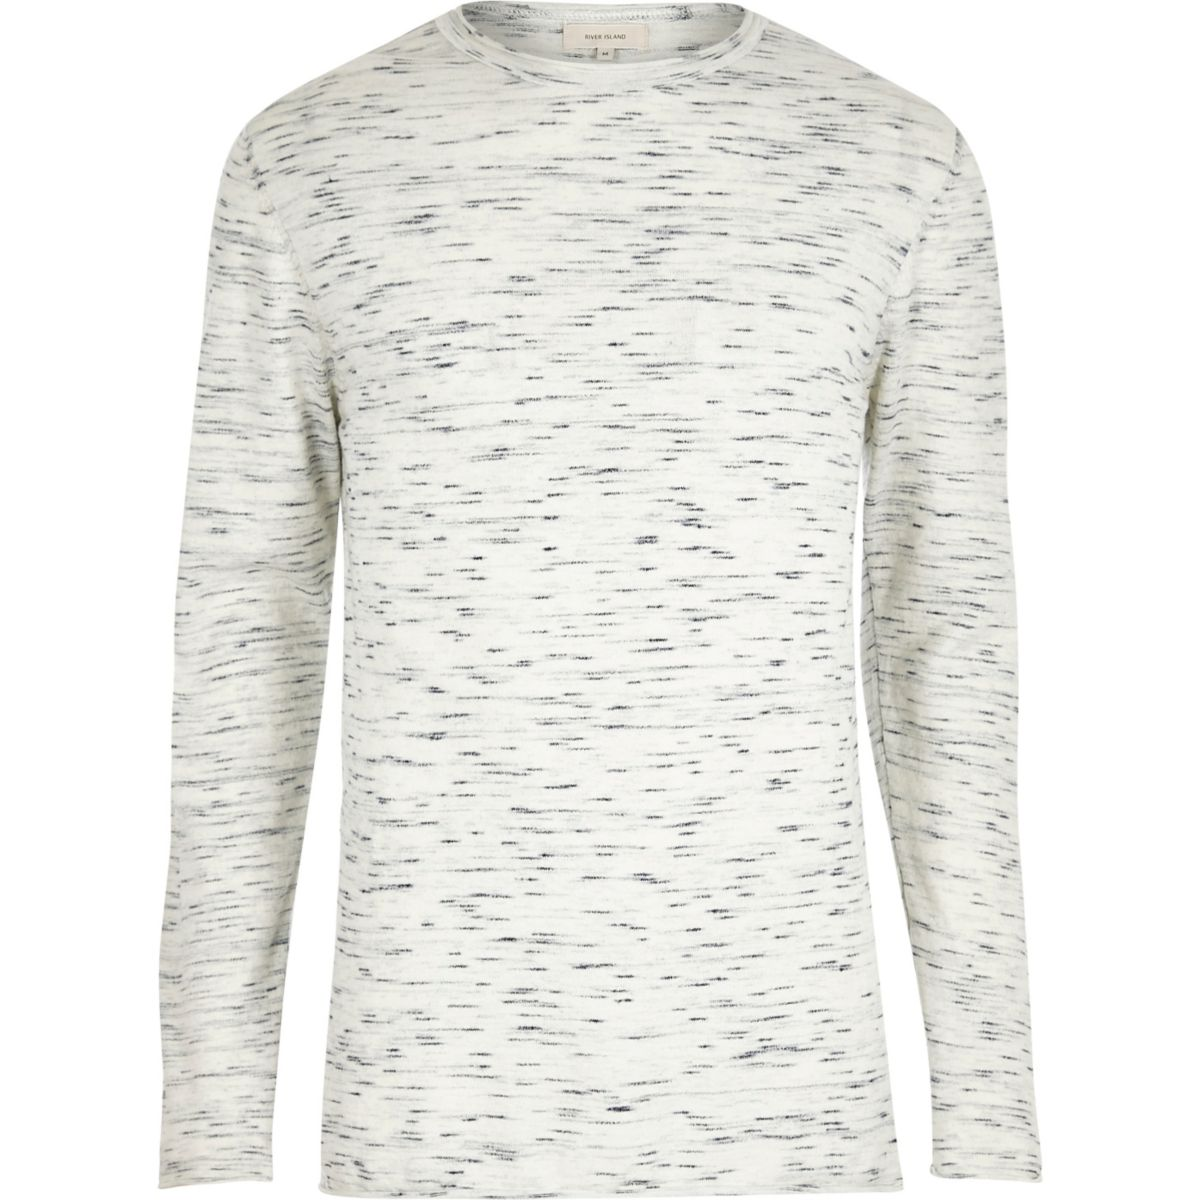 Cream space dye crew neck top